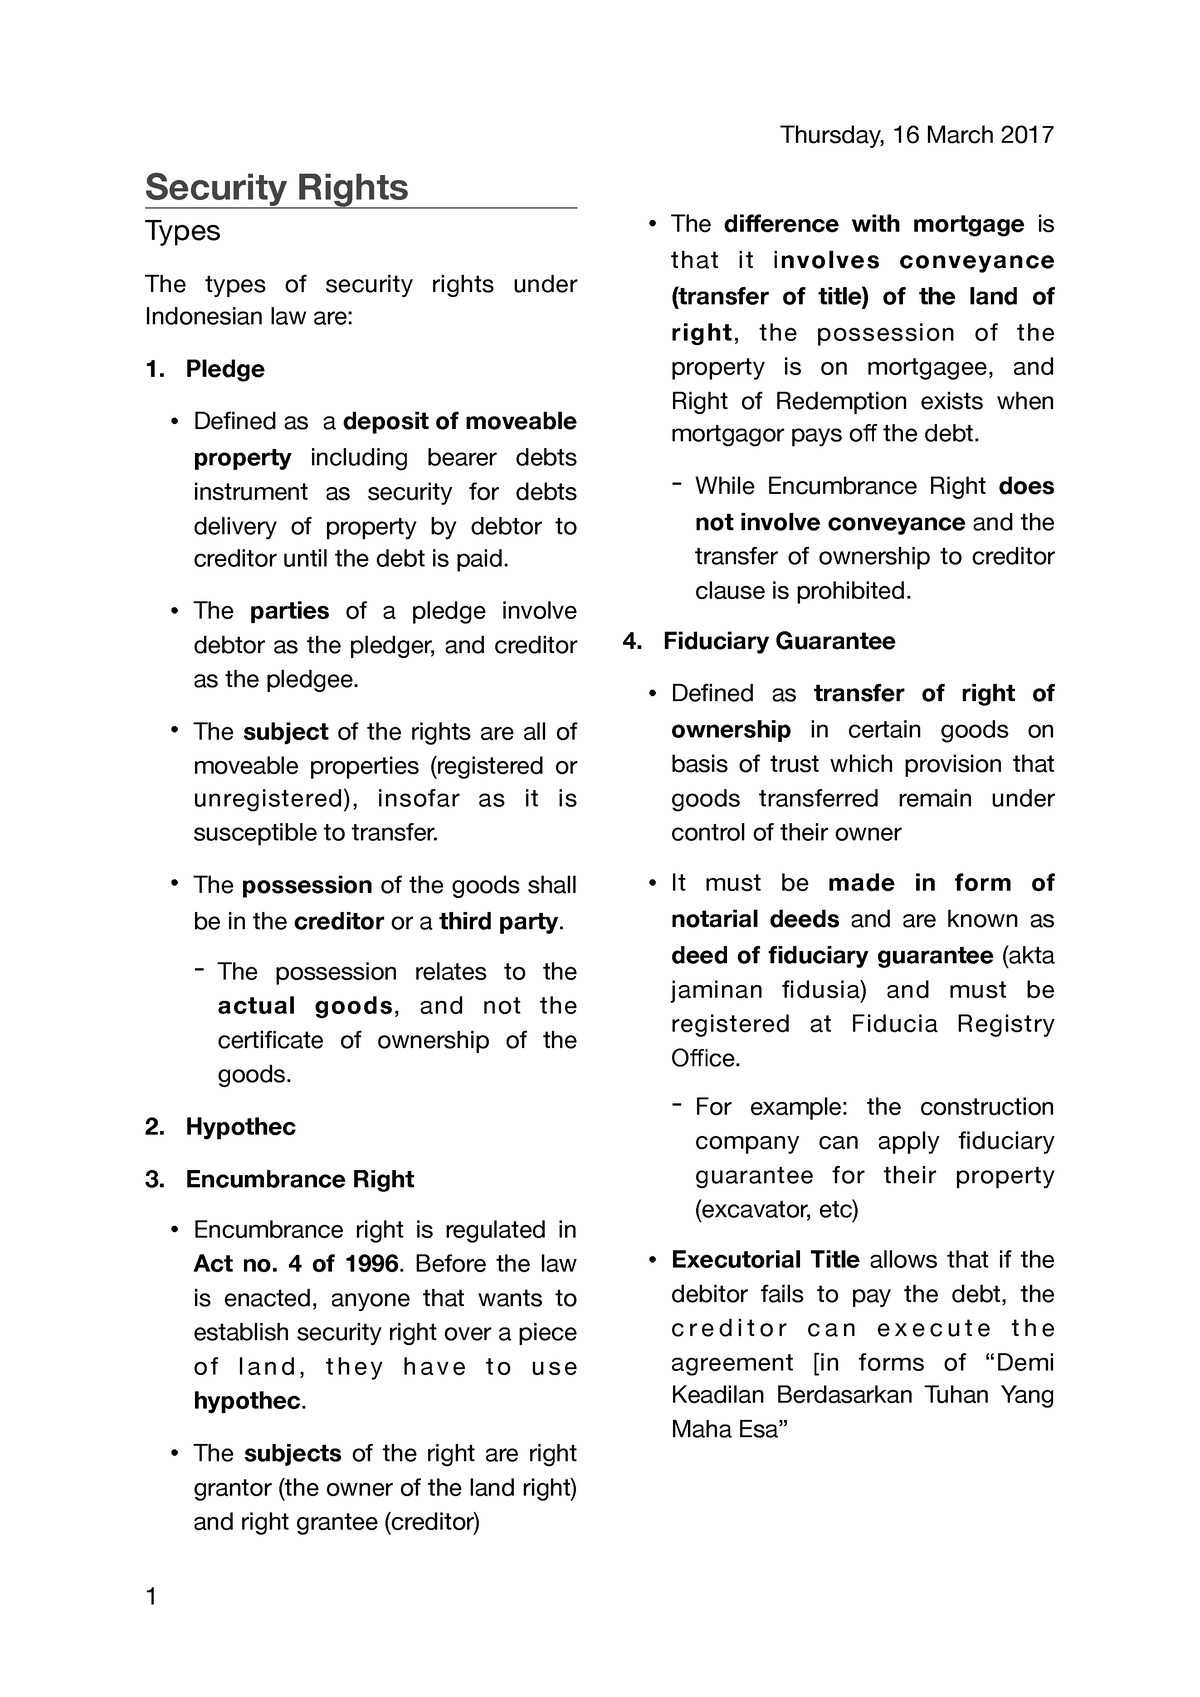 Security Rights - Lecture notes 12 - HKUI1124: Civil Law